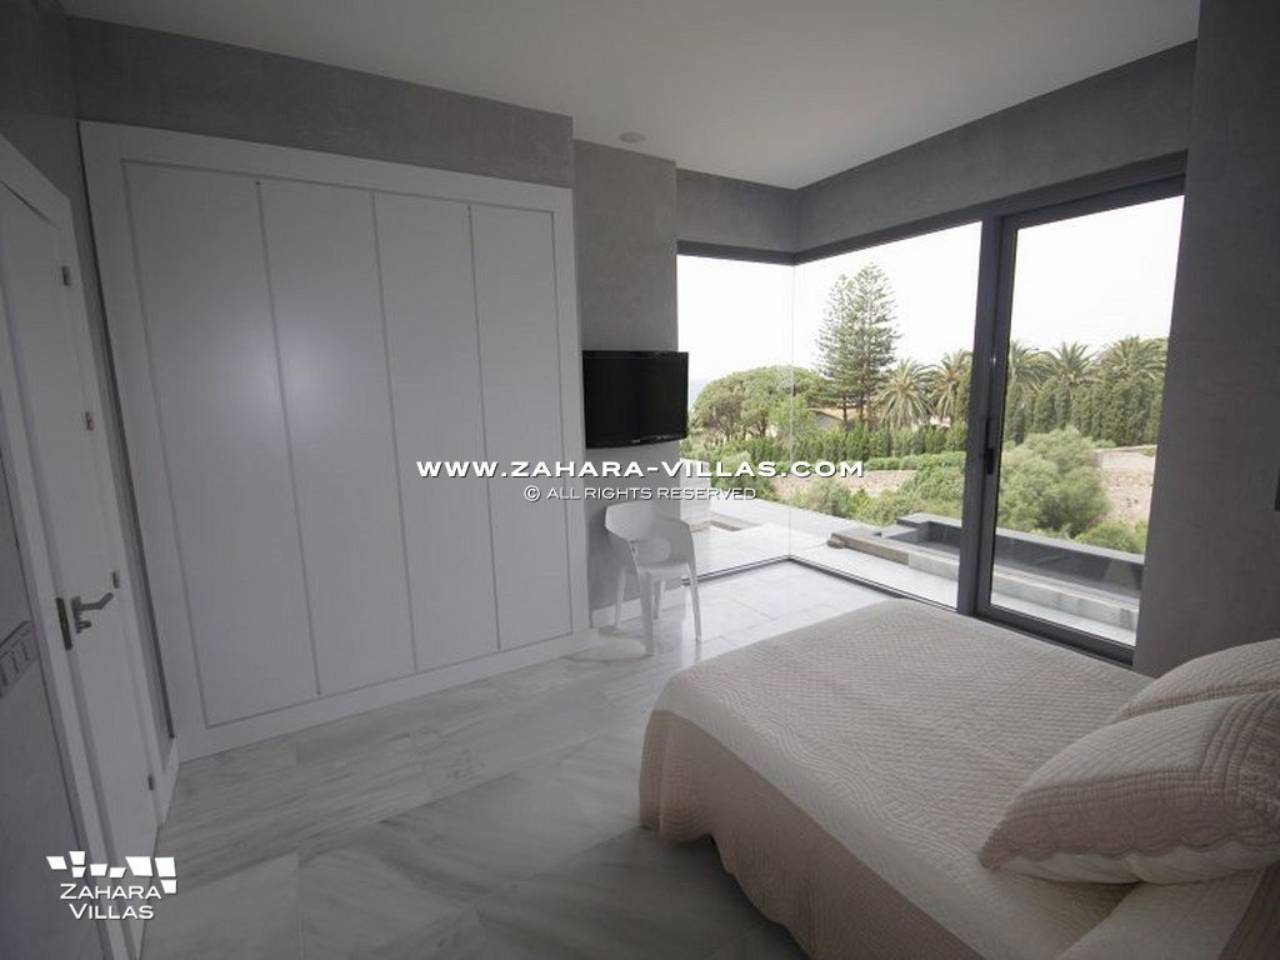 Imagen 11 de Wonderful Villa for sale with sea views in the beach Los Alemanes